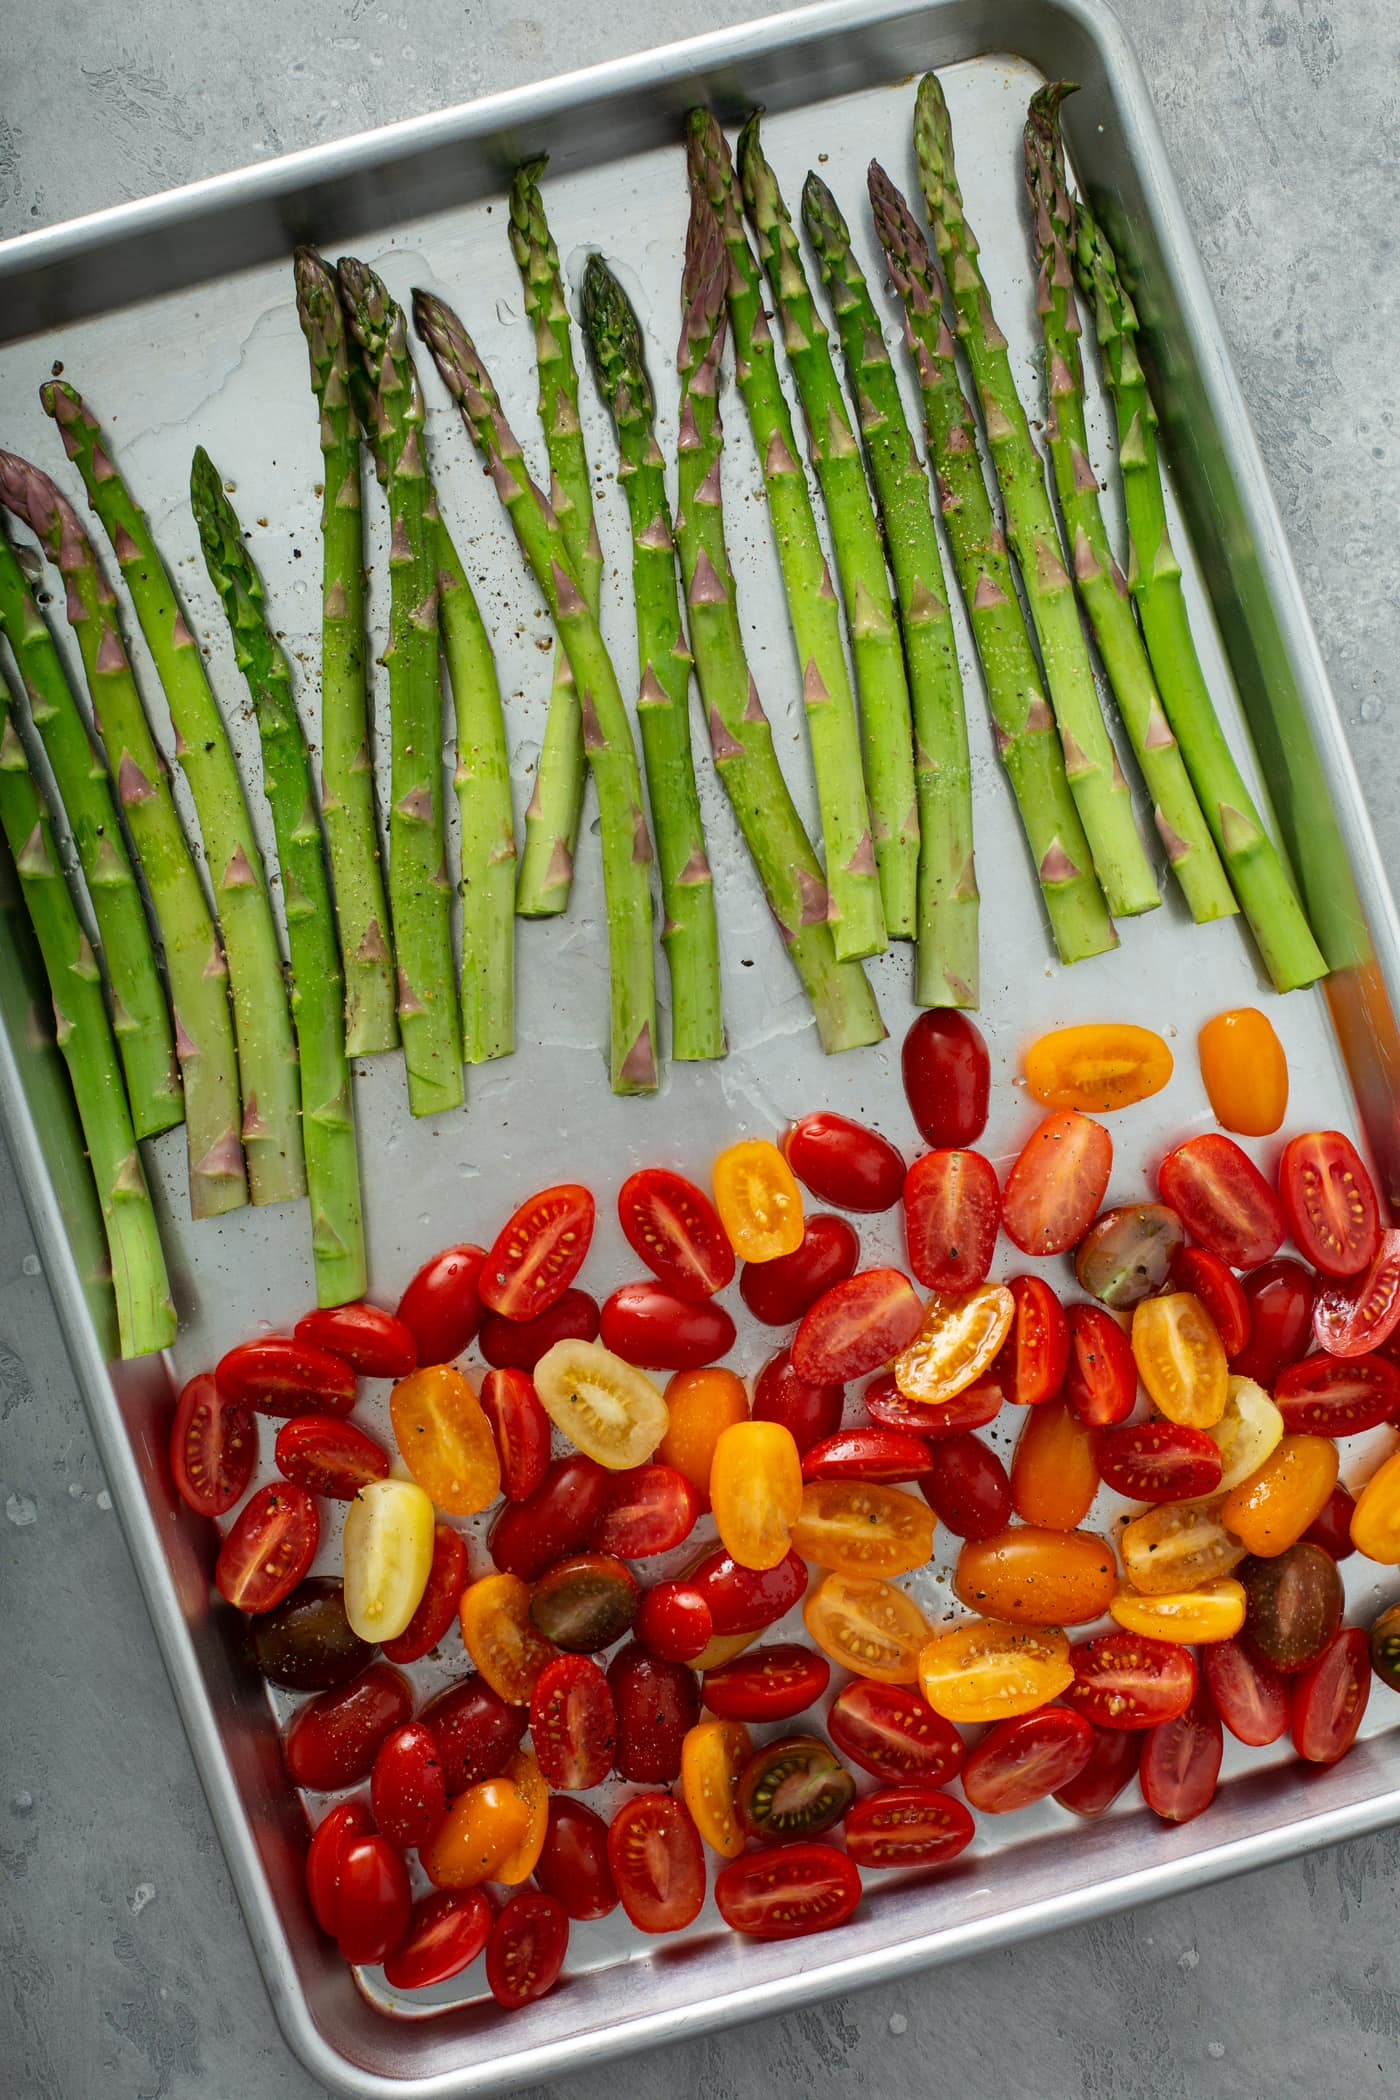 A baking pan with fresh green asparagus on one end and sliced red and yellow heirloom tomatoes on the other end.